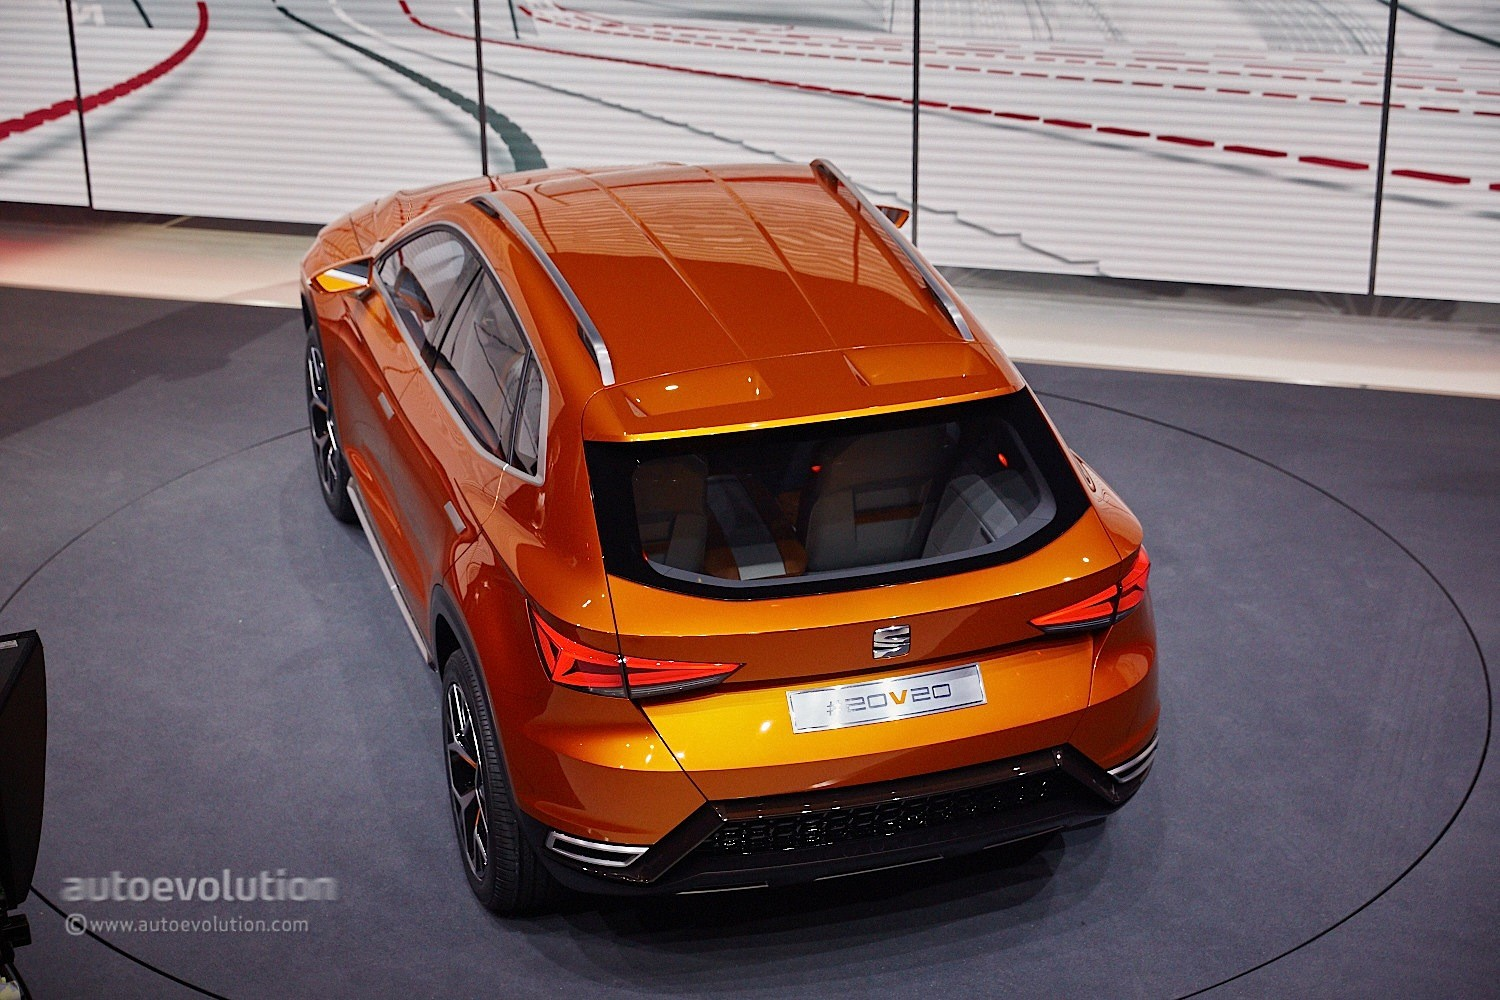 seat-prostyle-suv-will-be-the-first-of-4-new-models-coming-until-2017_14